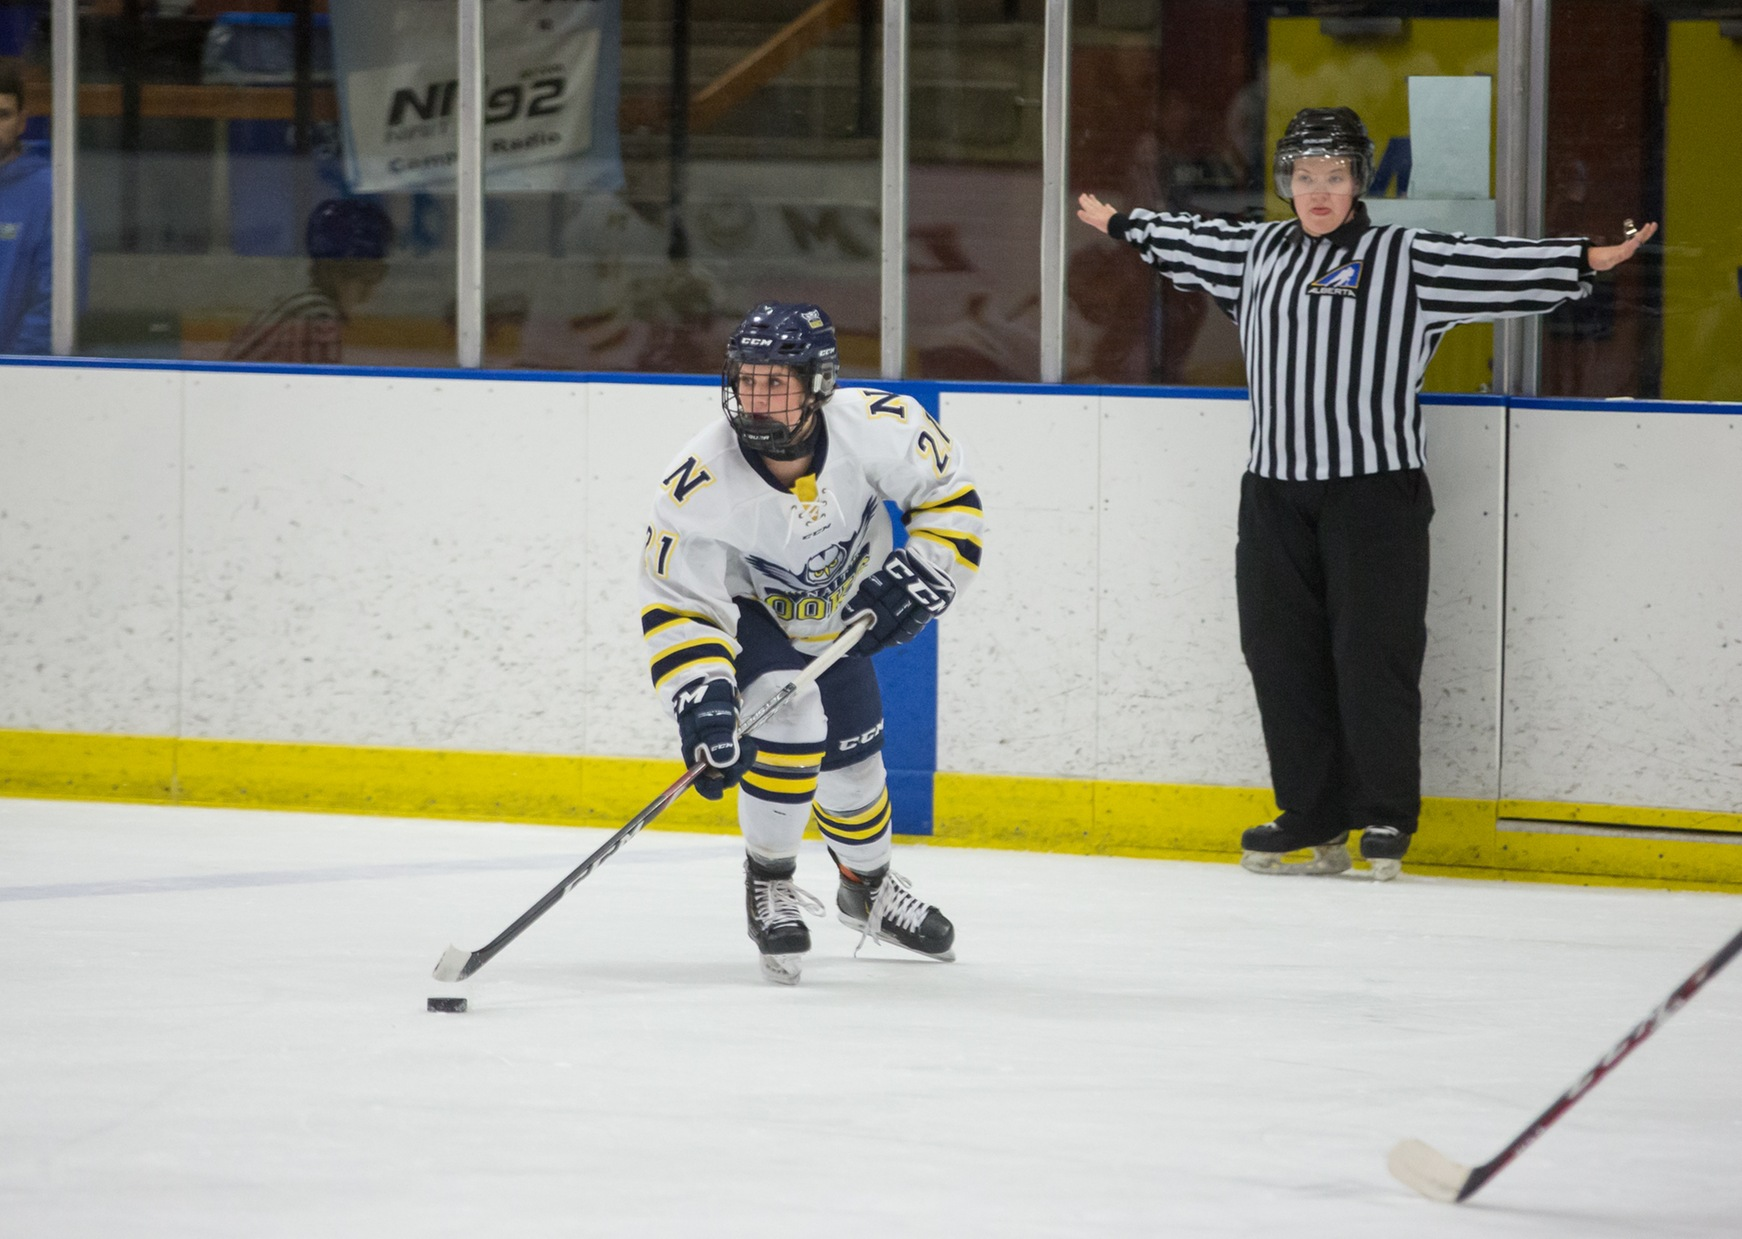 Ooks dethrone Queens in a shootout